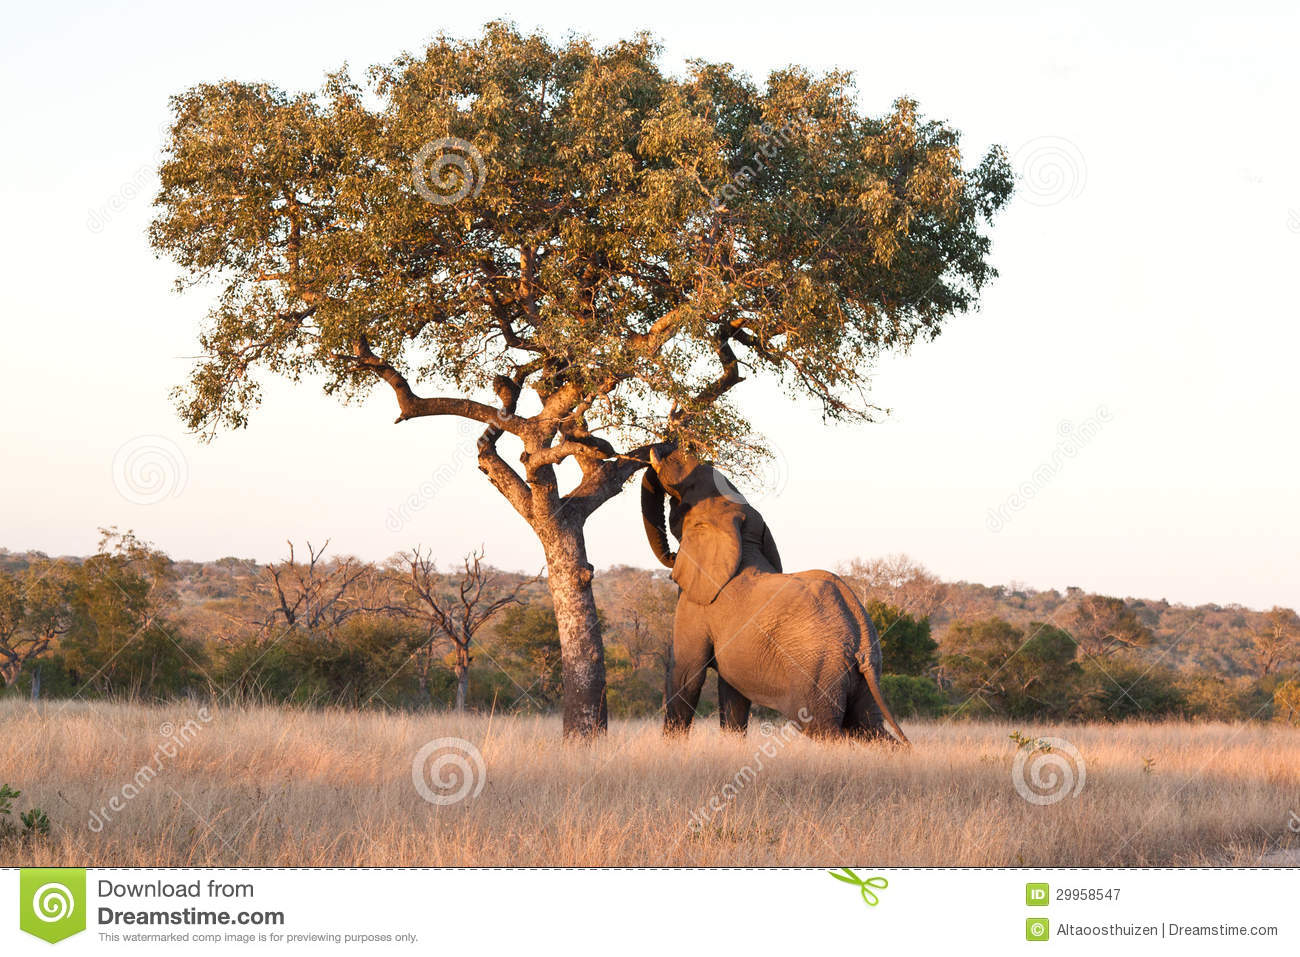 elephant push marula tree stock image image of marula 29958547. Black Bedroom Furniture Sets. Home Design Ideas